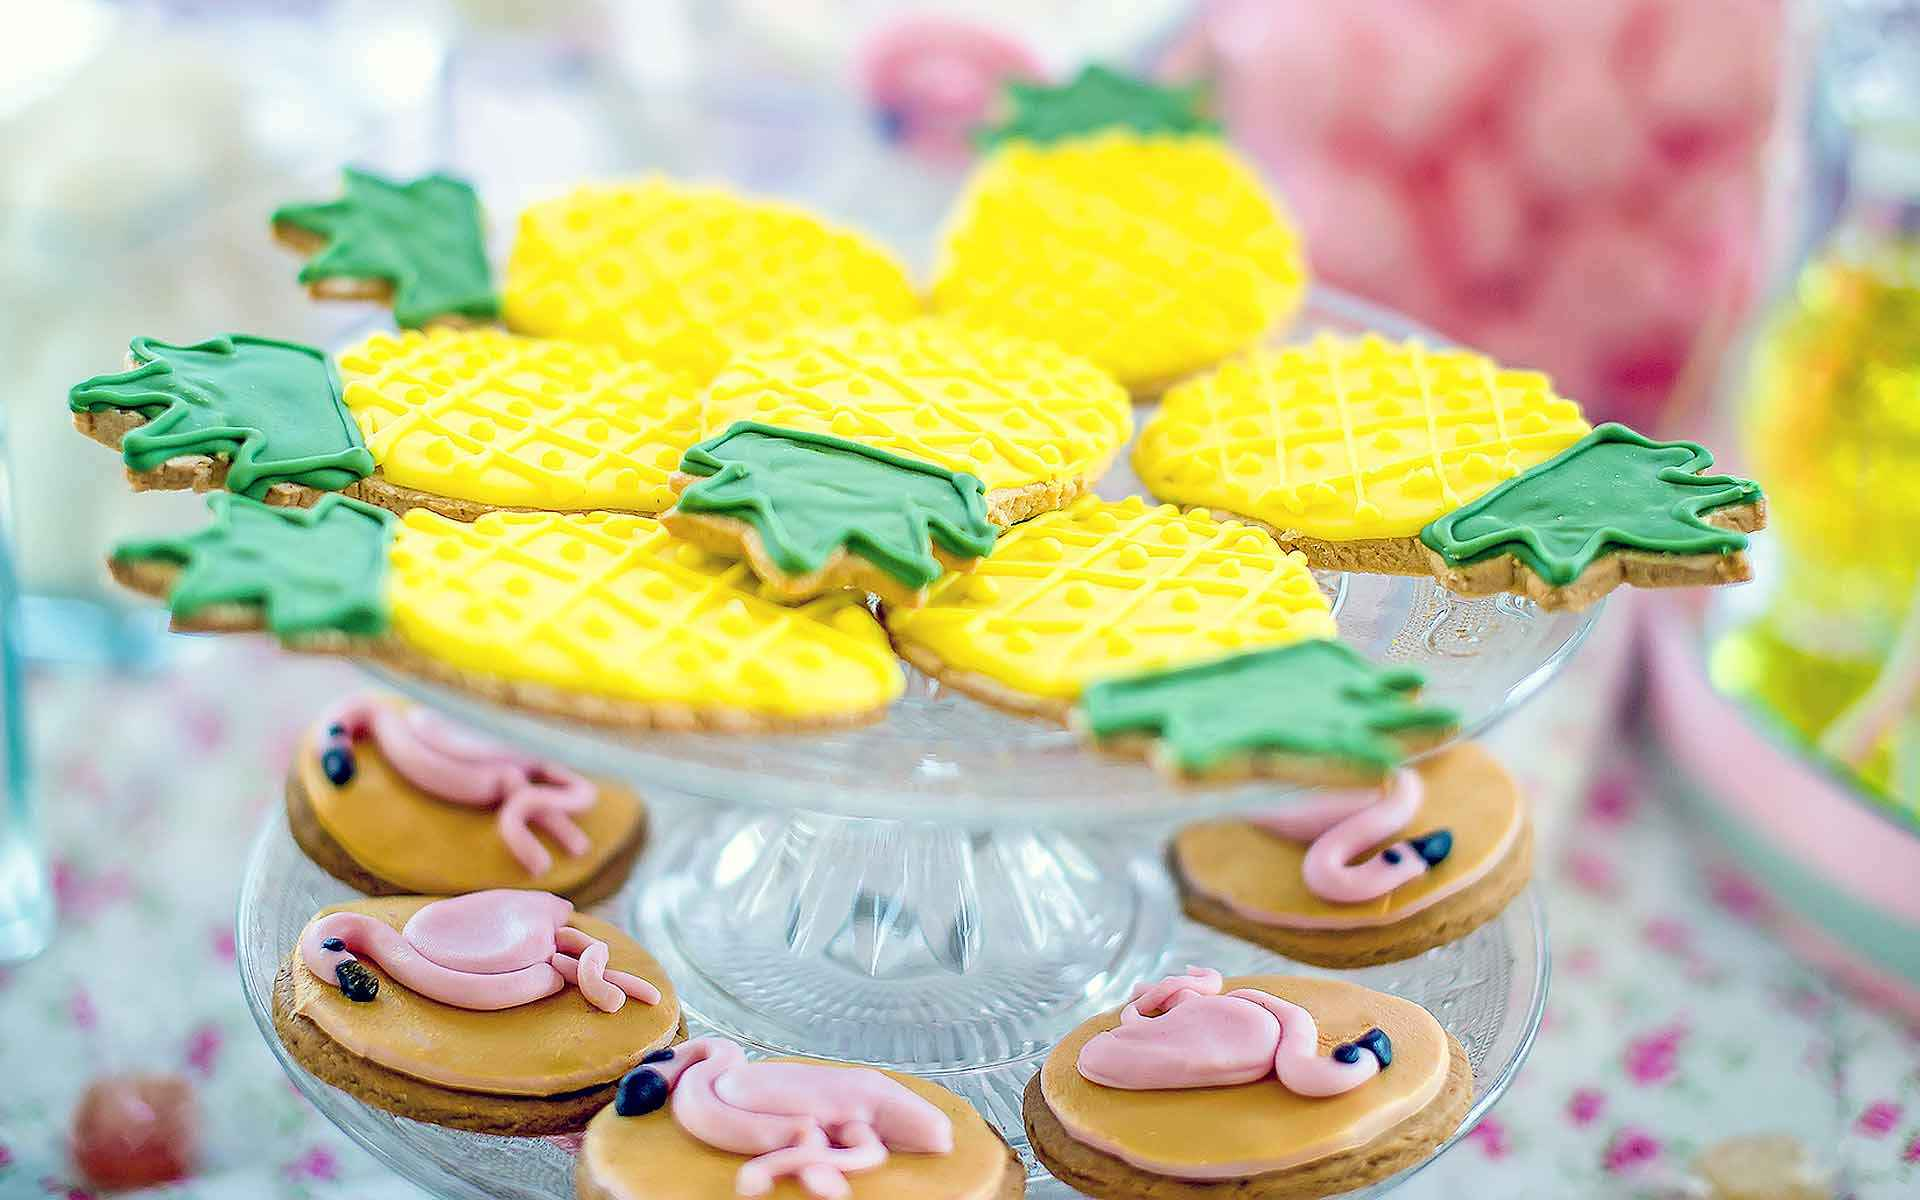 Flamingo-Biscuits-For-Tropical-Themed-Bridal-Shower-Or-Bachelorette-Party